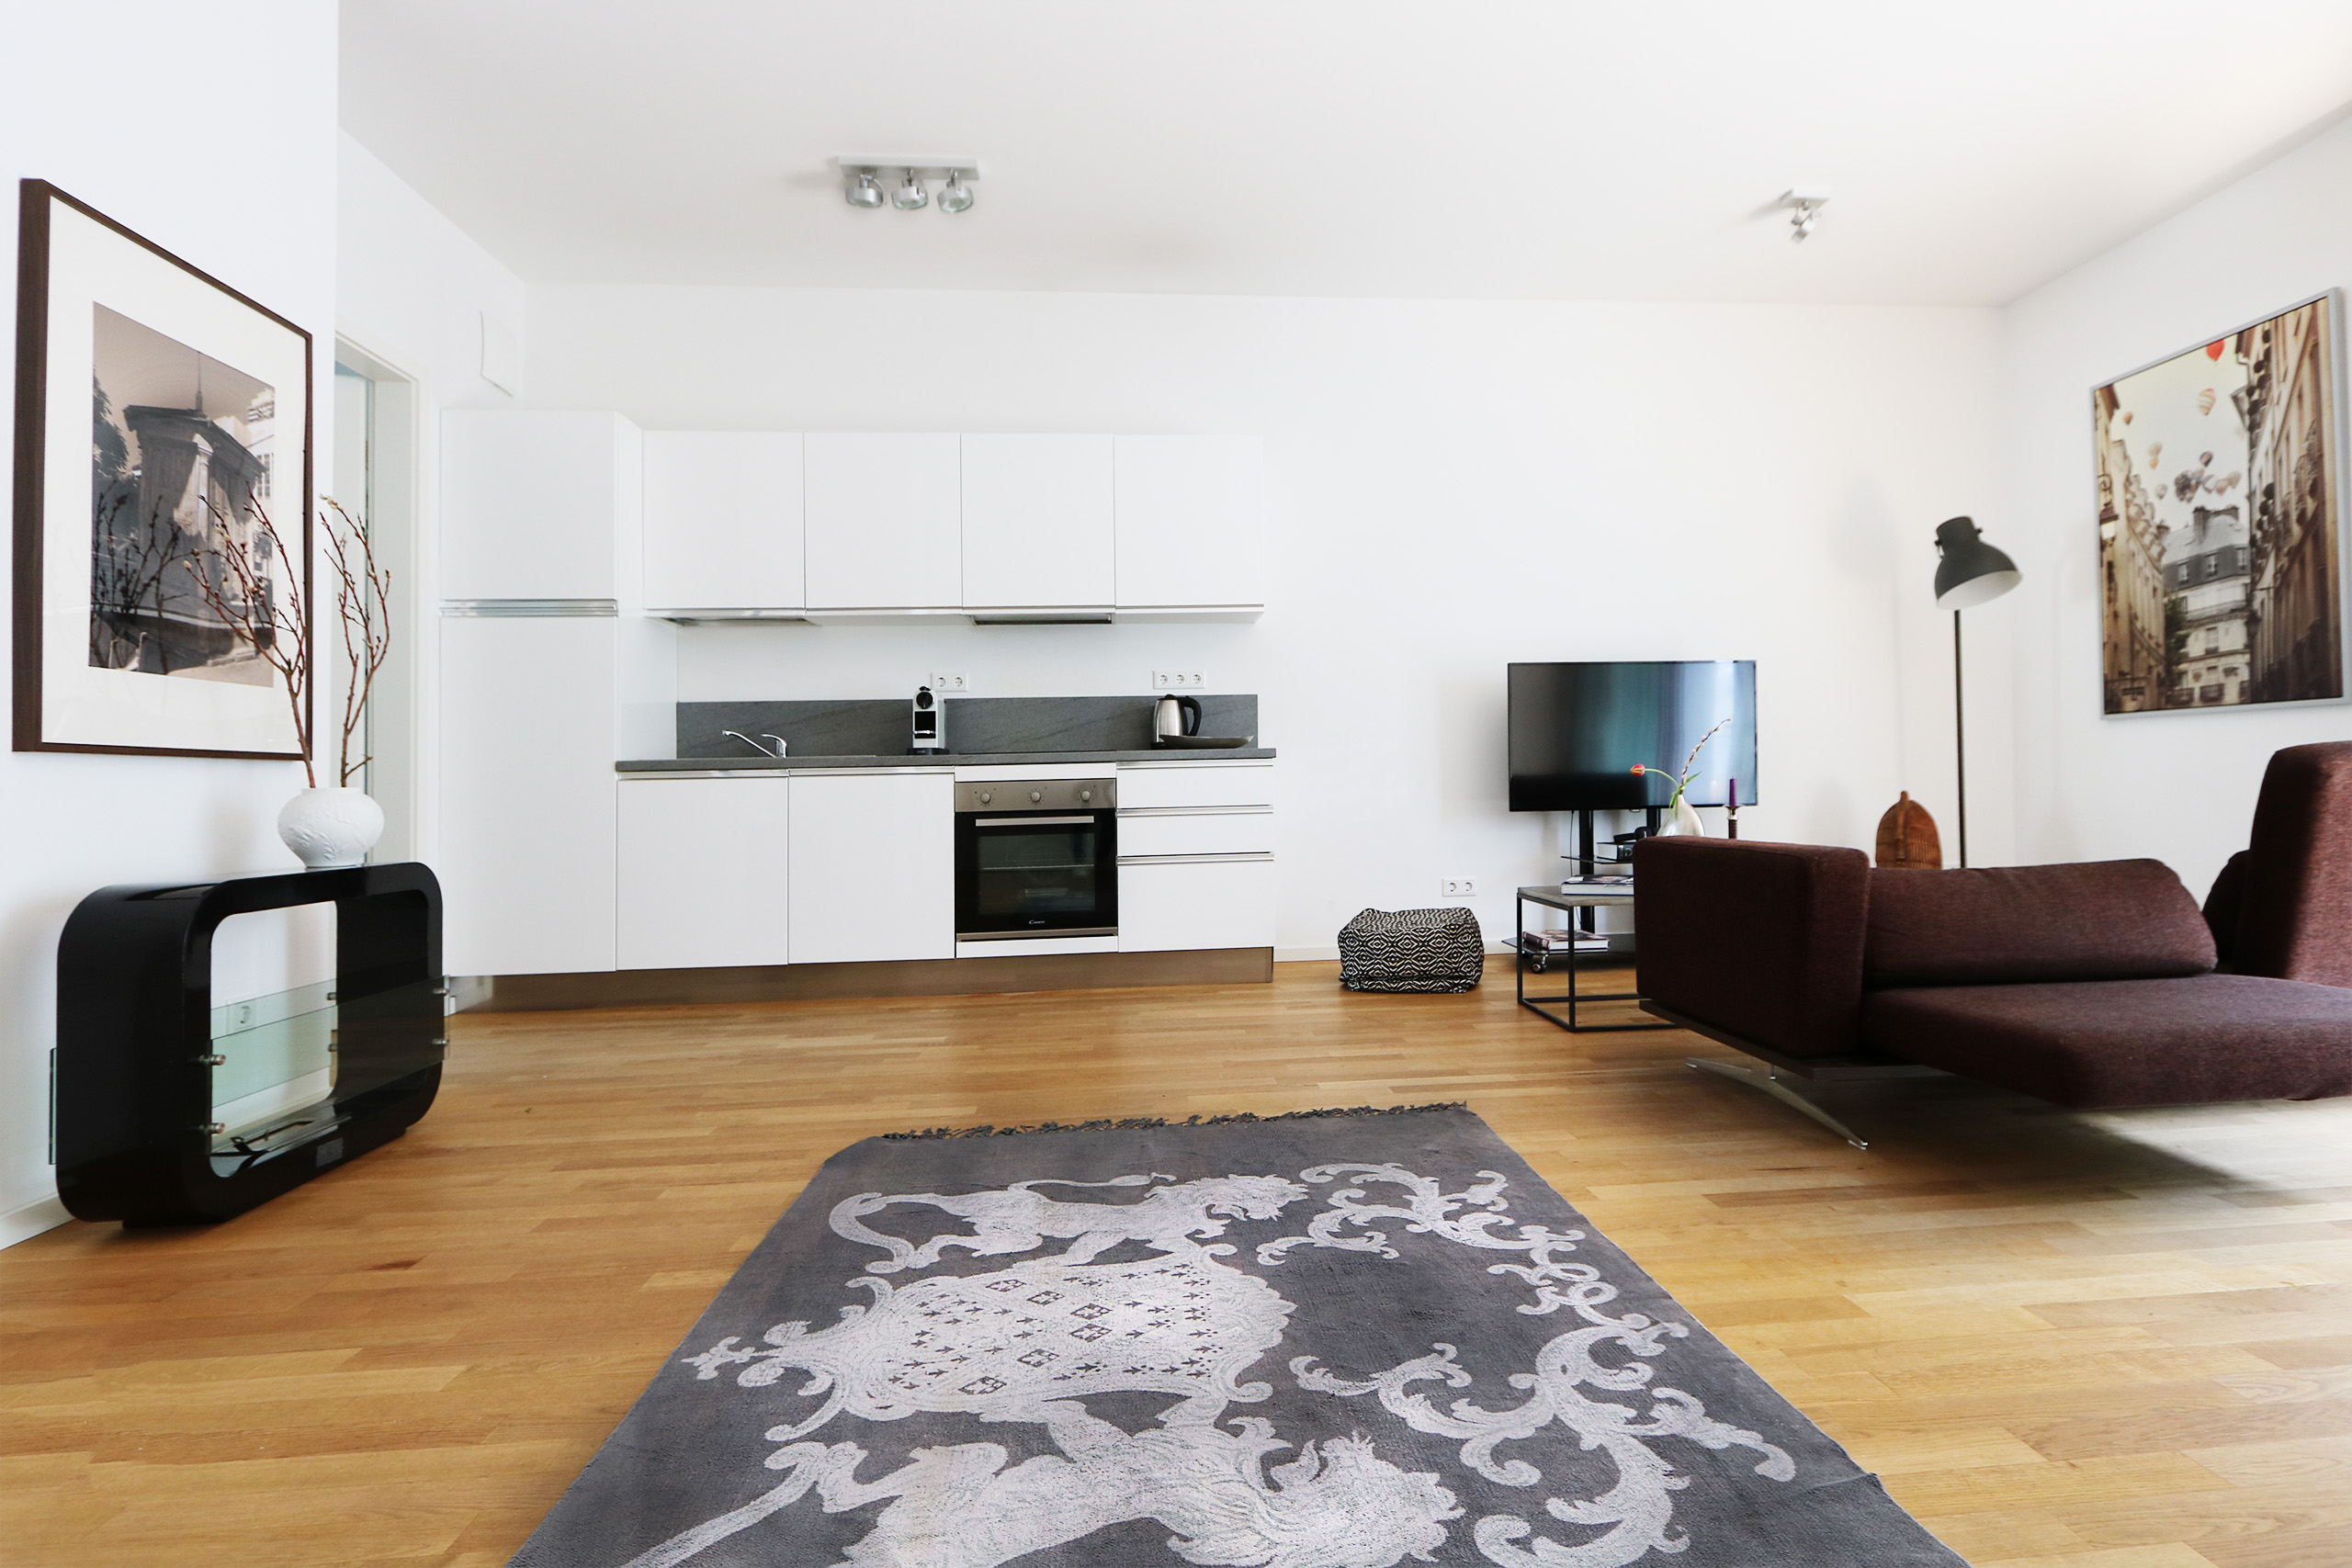 furnished apartments in berlin germany urban apartments. Black Bedroom Furniture Sets. Home Design Ideas